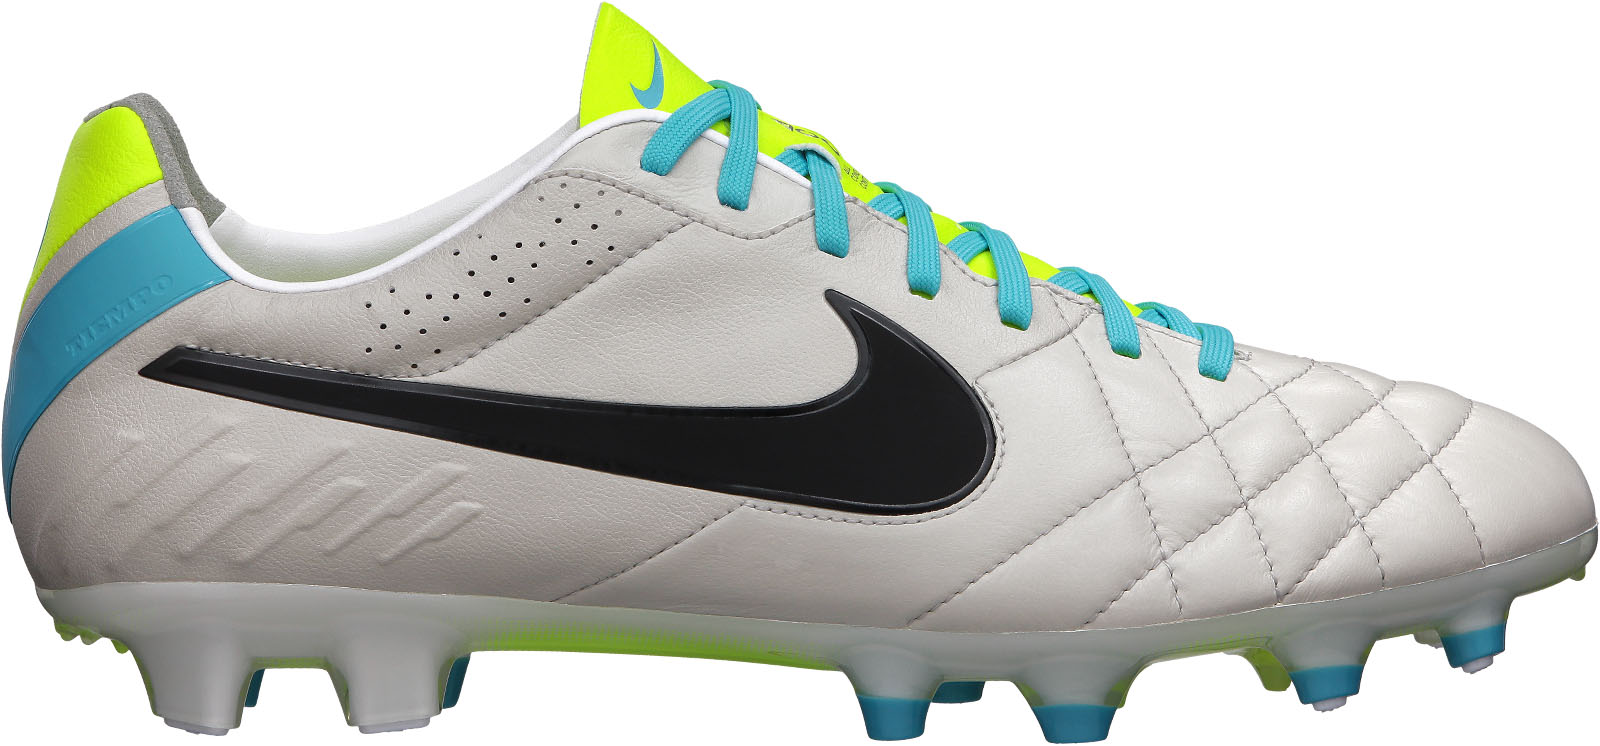 nike tiempo legend iv light bone yellow blue boot. Black Bedroom Furniture Sets. Home Design Ideas